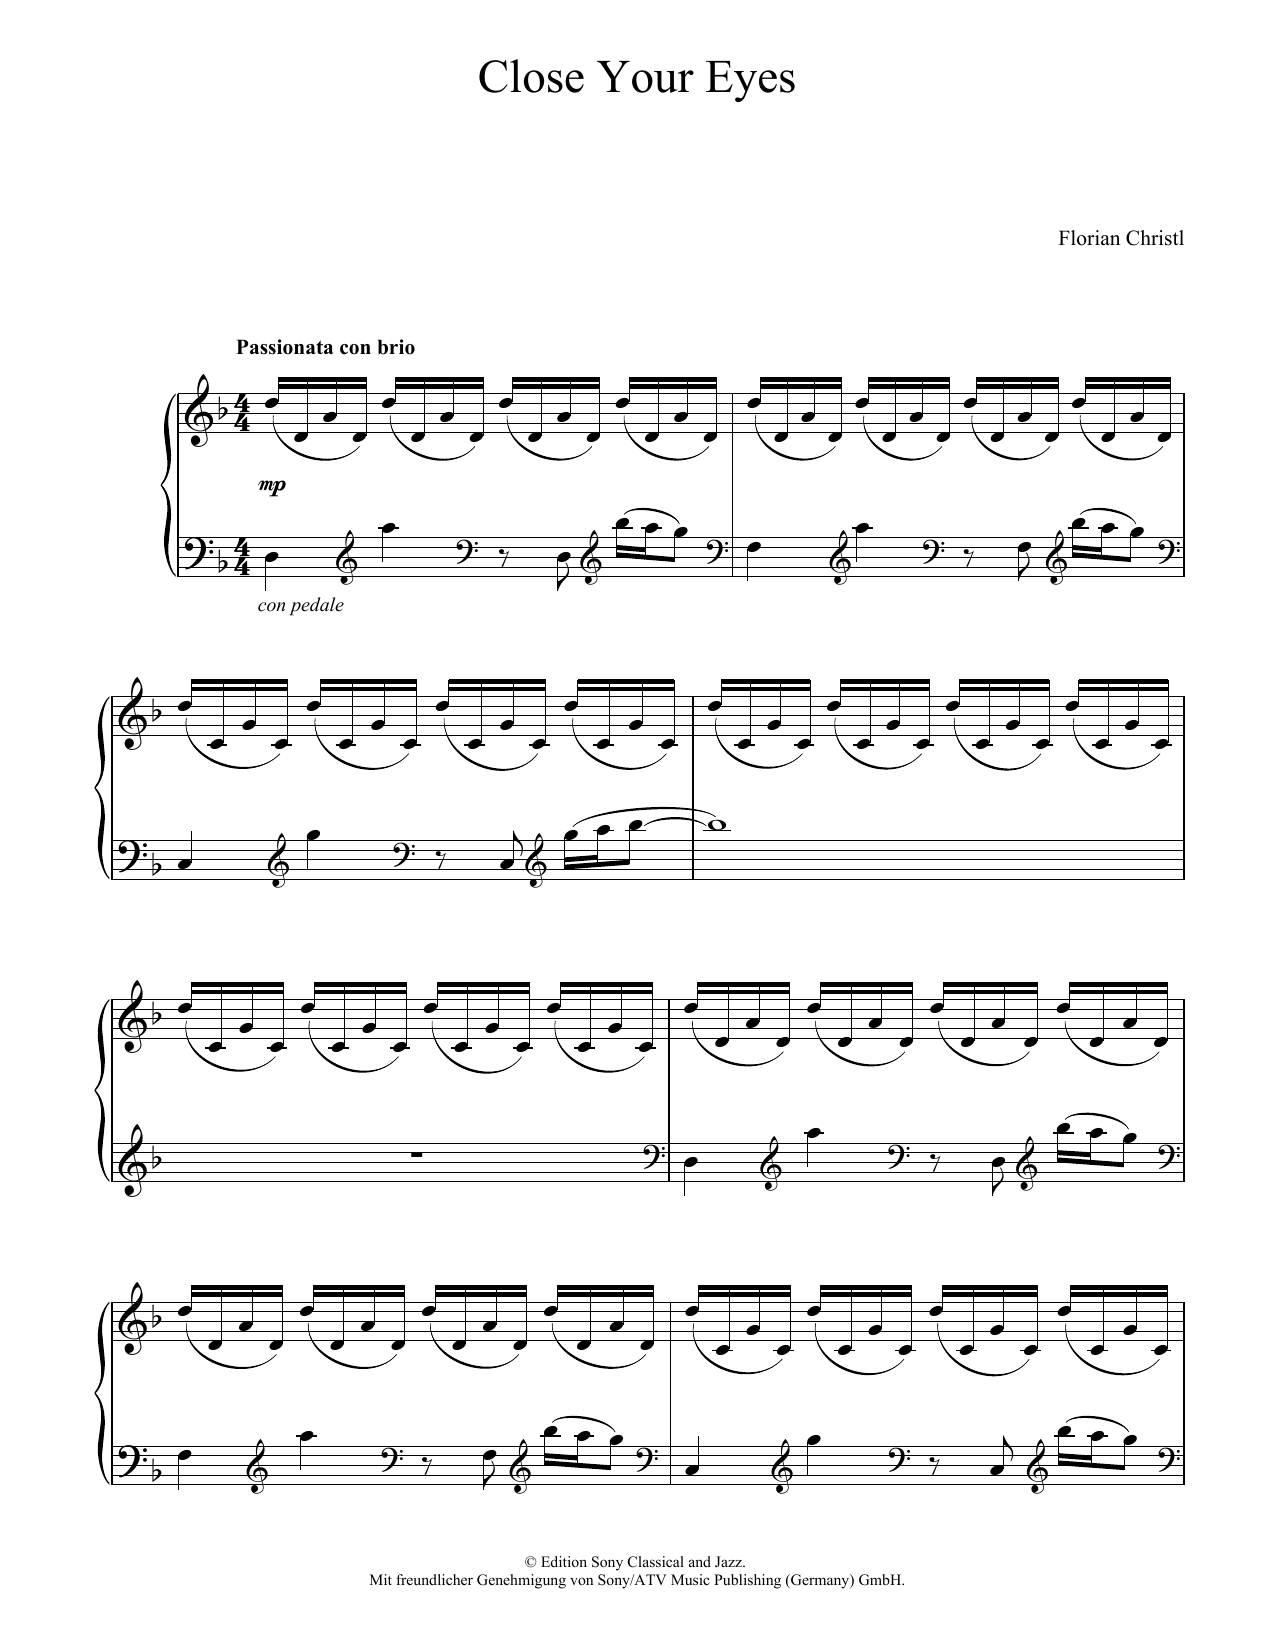 Florian Christl Close Your Eyes sheet music notes and chords